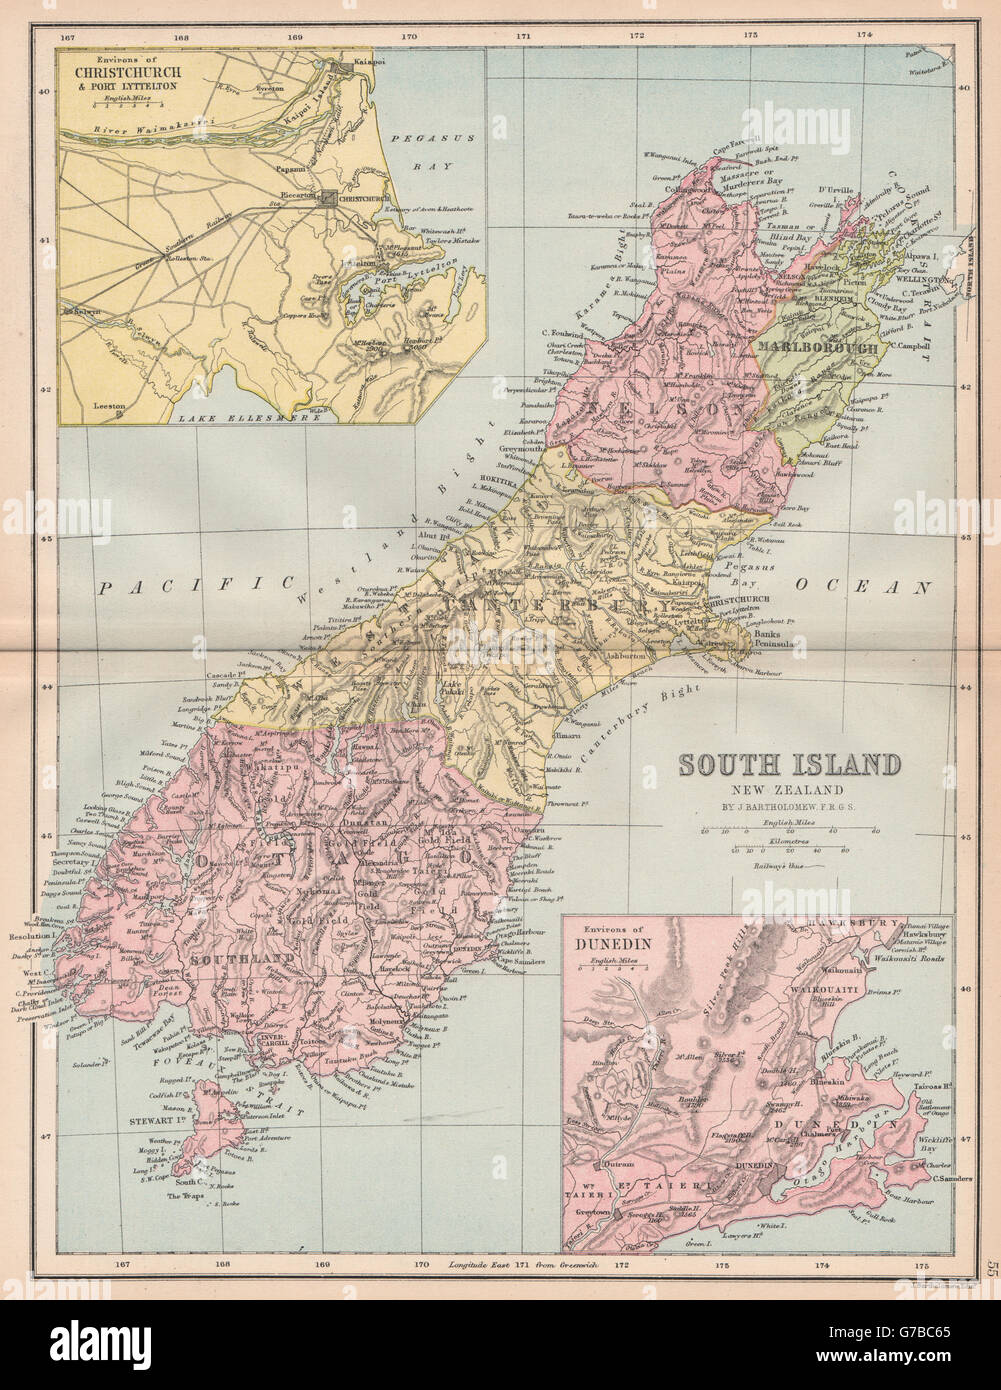 Show Map Of New Zealand.South Island New Zealand Shows 1870 Provinces Dunedin Christchurch